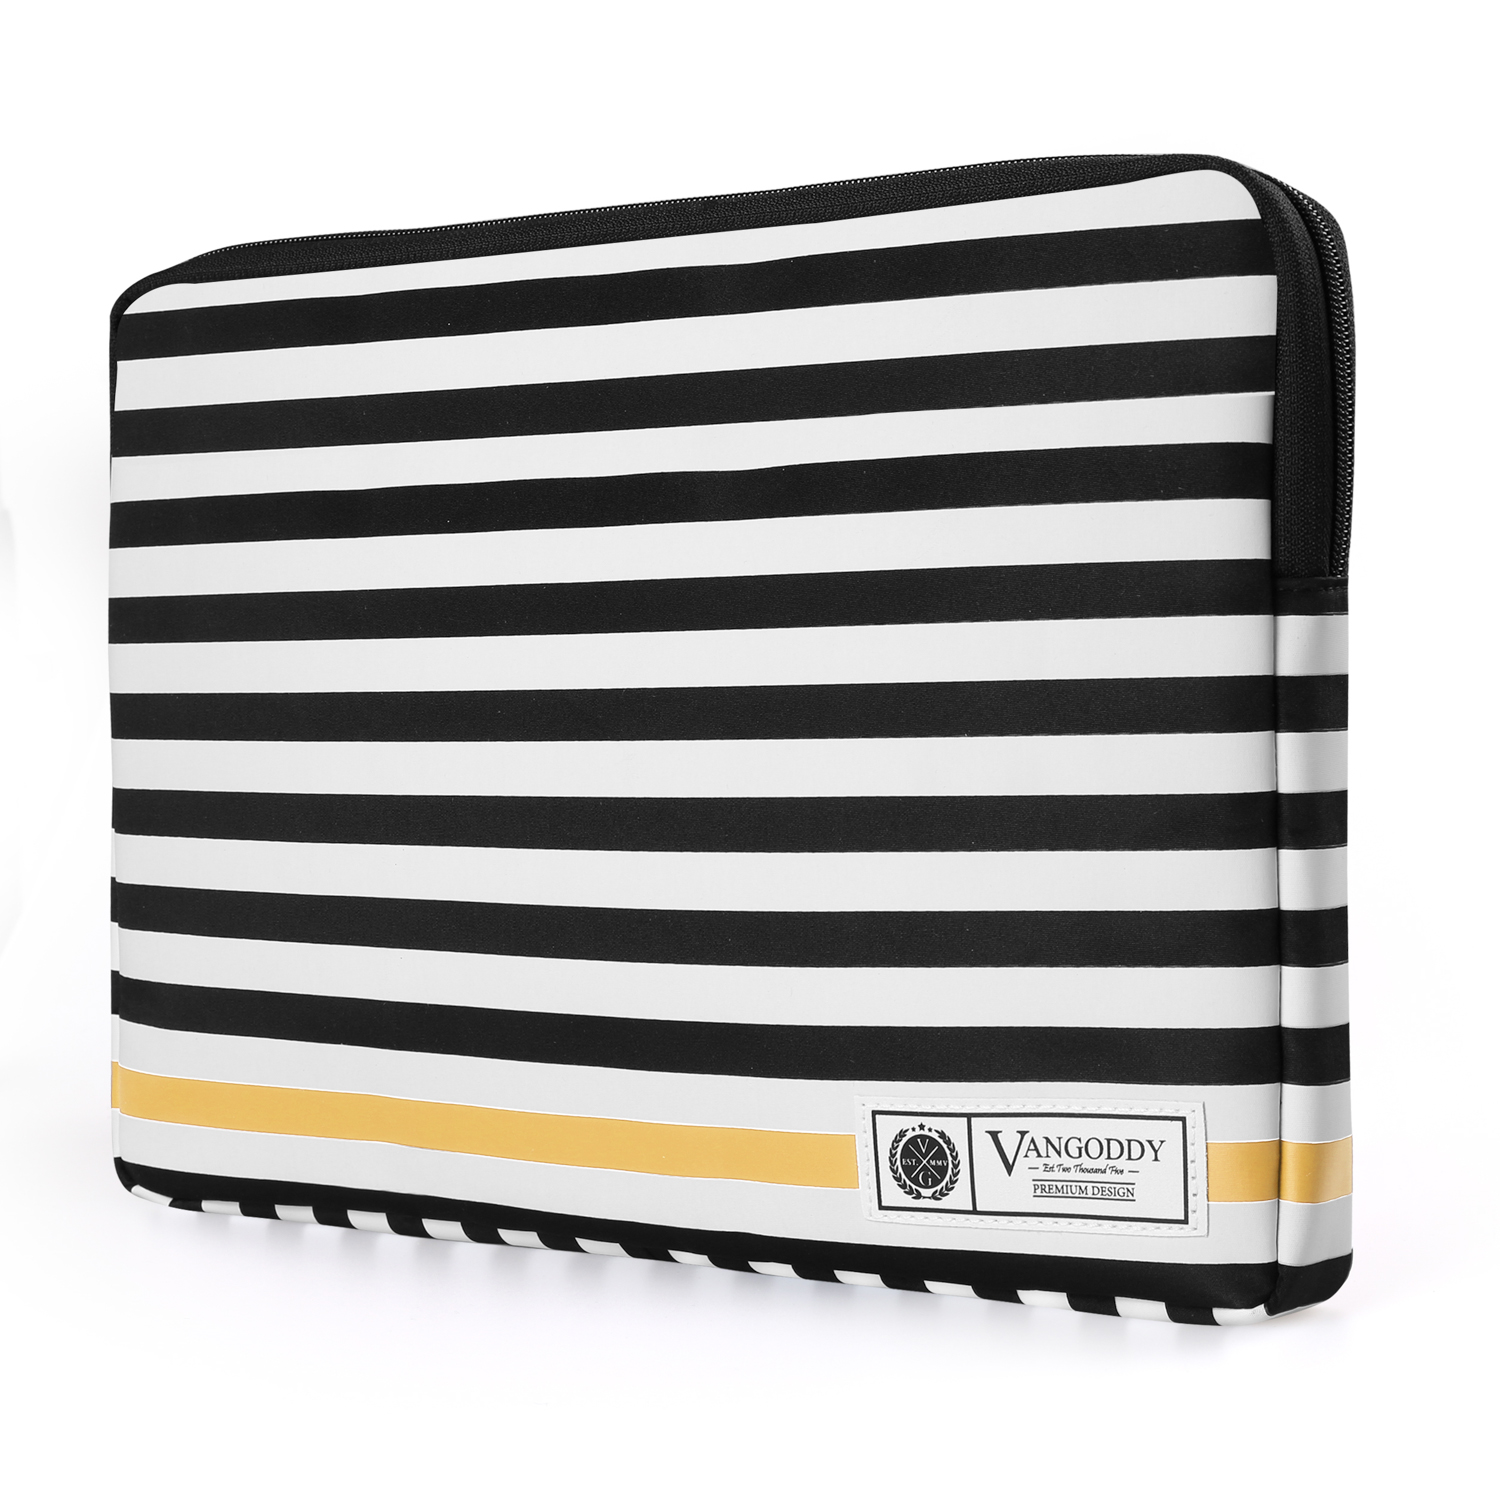 "VANGODDY Luxe 15.6"" Laptop Sleeve for HP, Asus, Dell, Toshiba, Lenovo, Acer, Macbook"